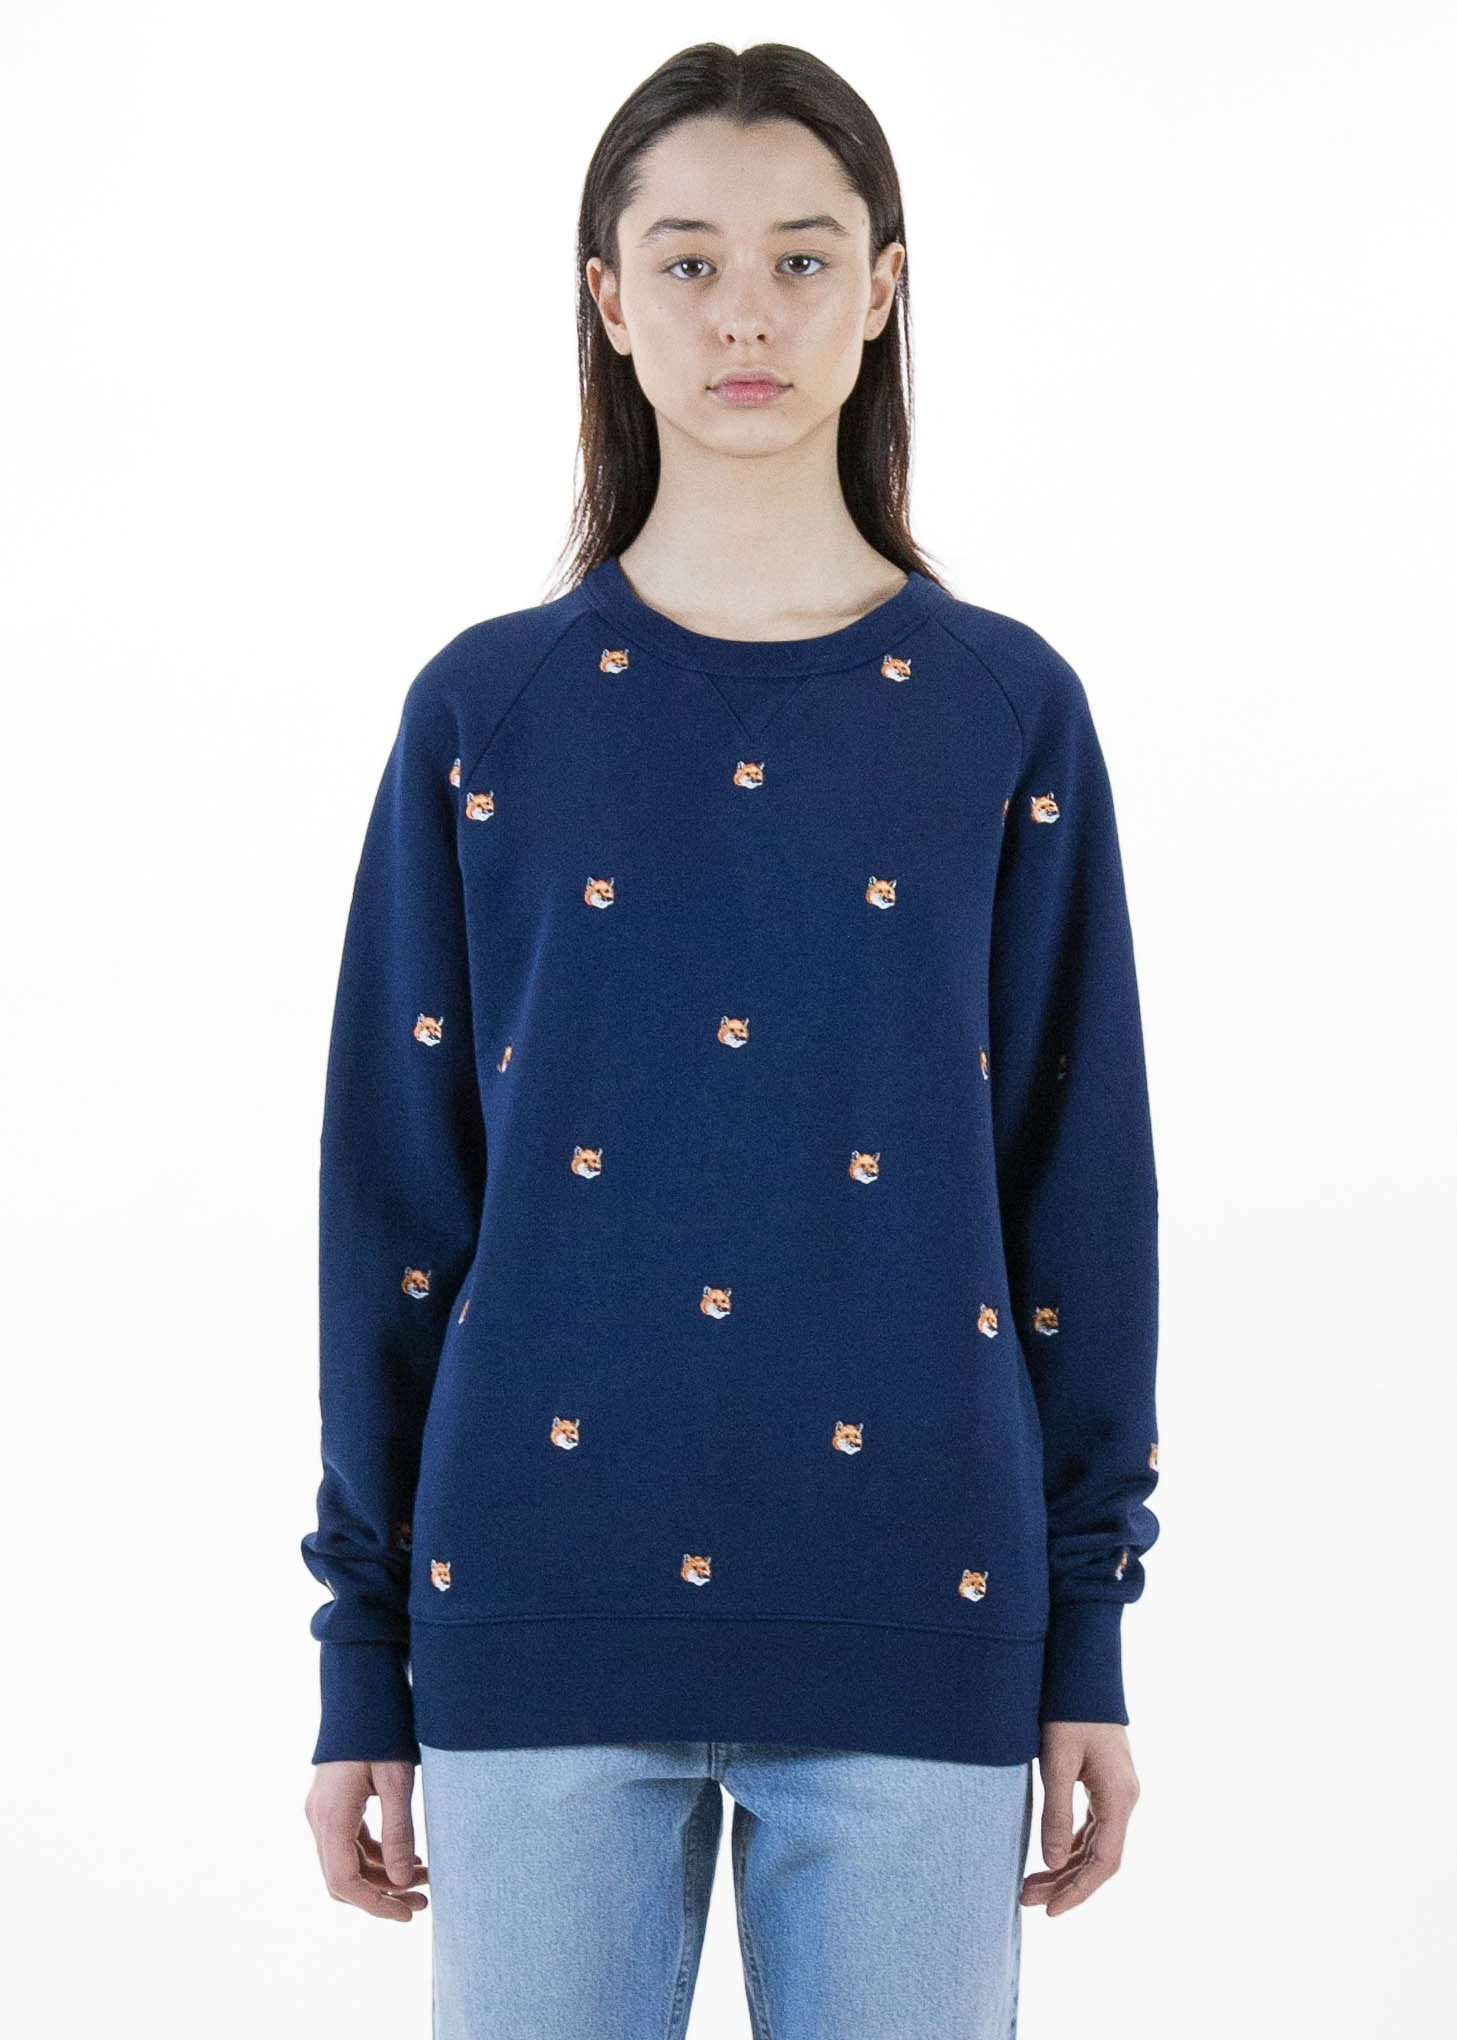 All Over Fox Head Embroidery Sweatshirt